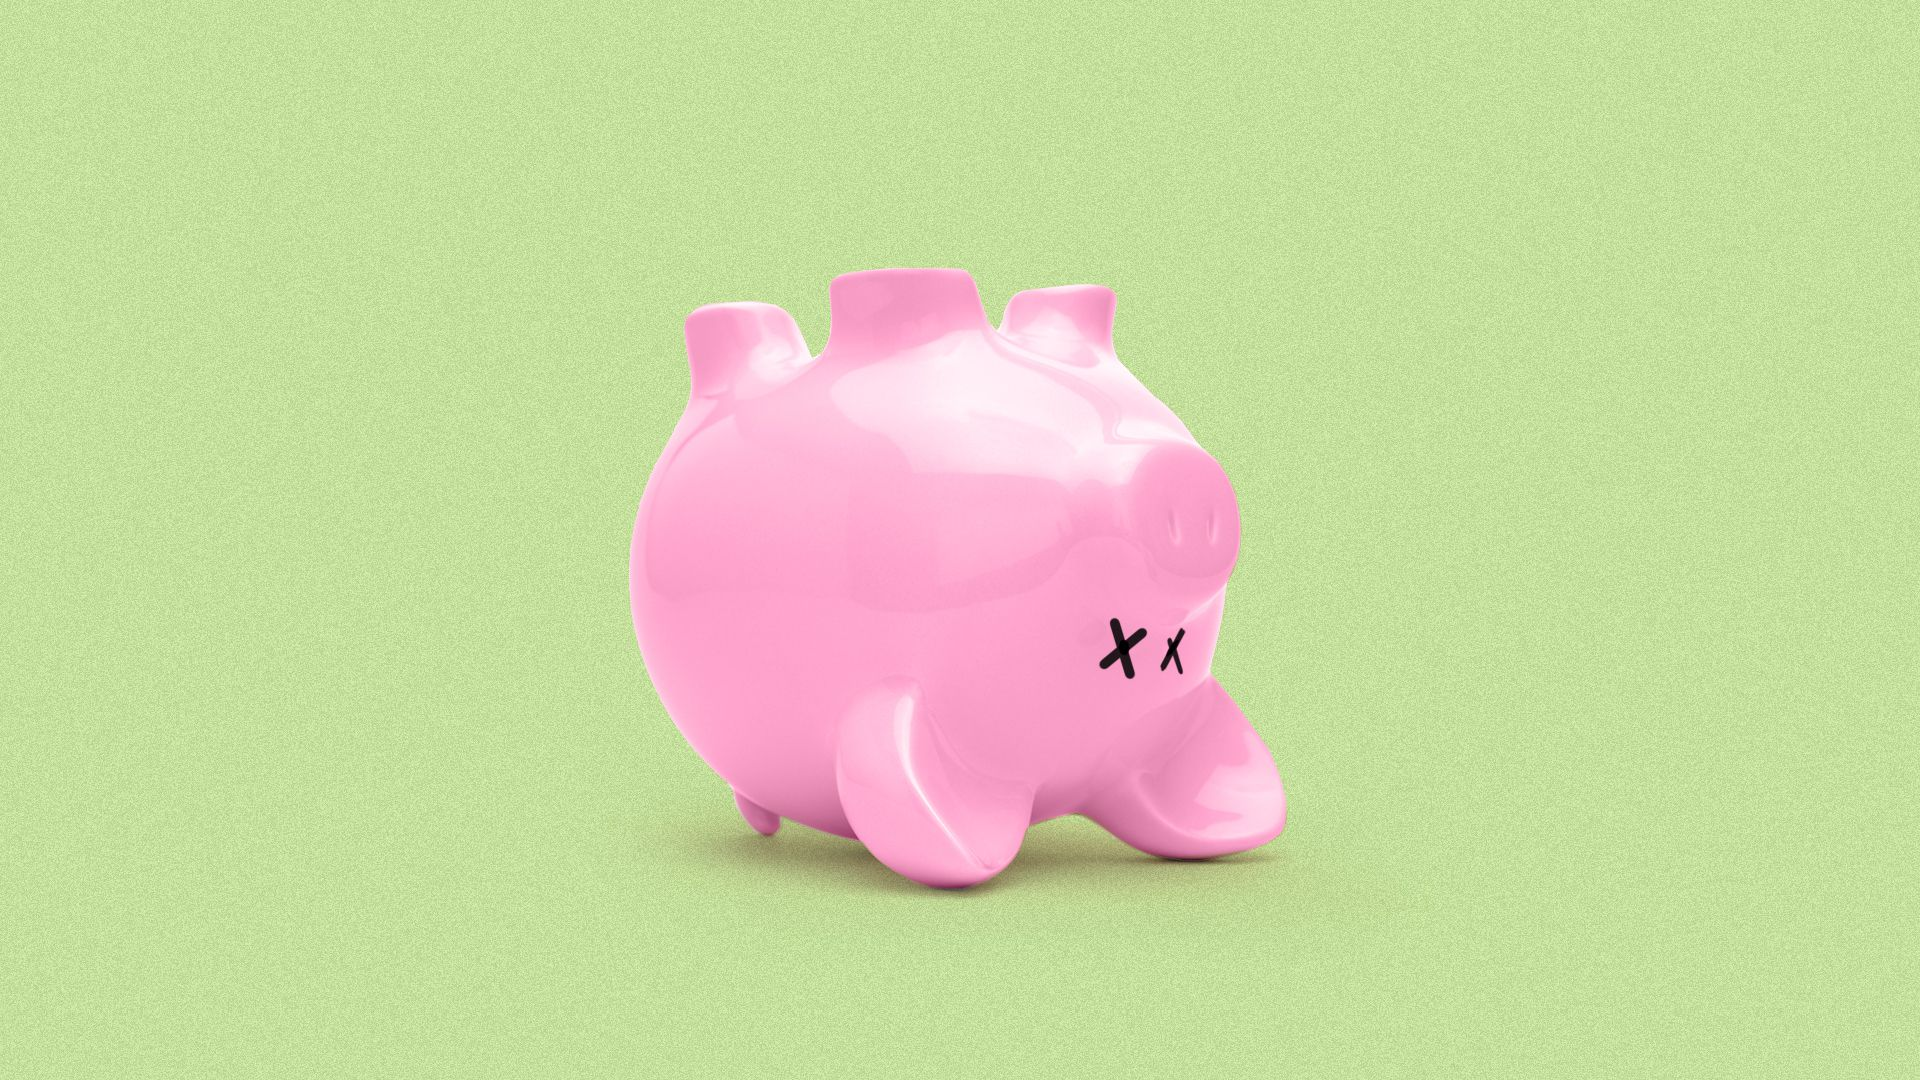 Illustration of a piggy bank on its back with X's for eyes